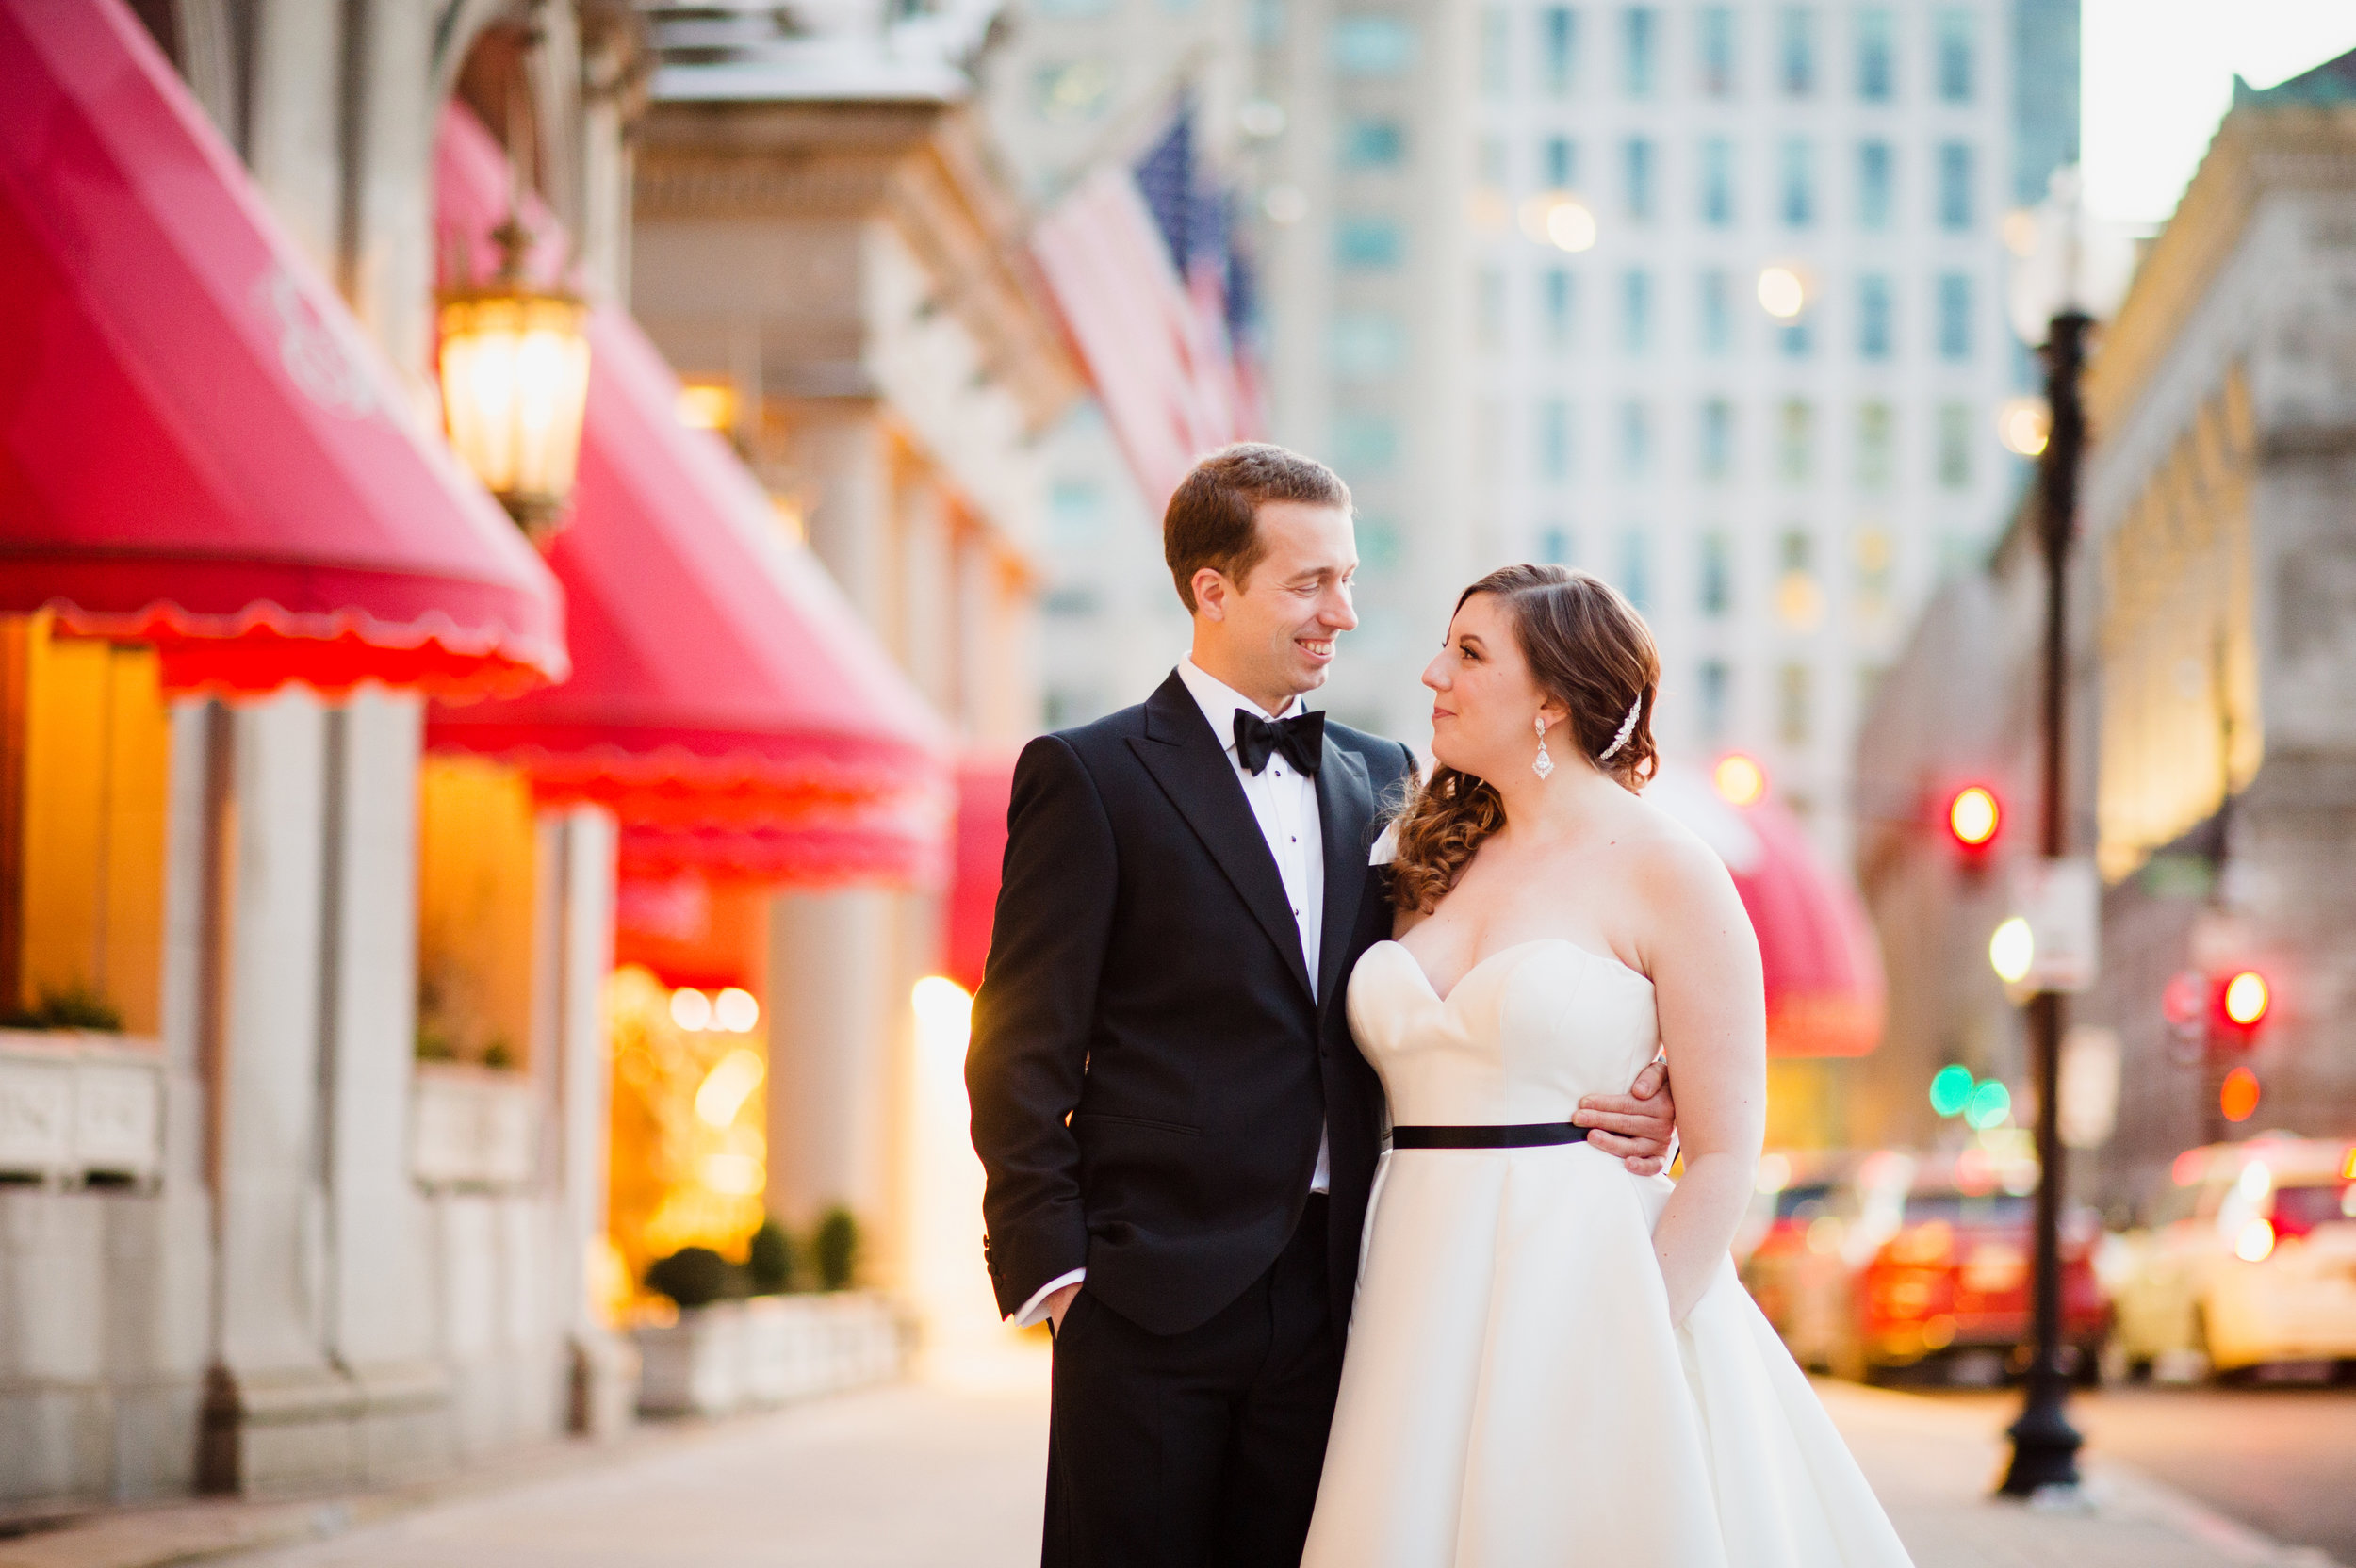 Fairmont-copley-plaza-wedding-photo-34.JPG